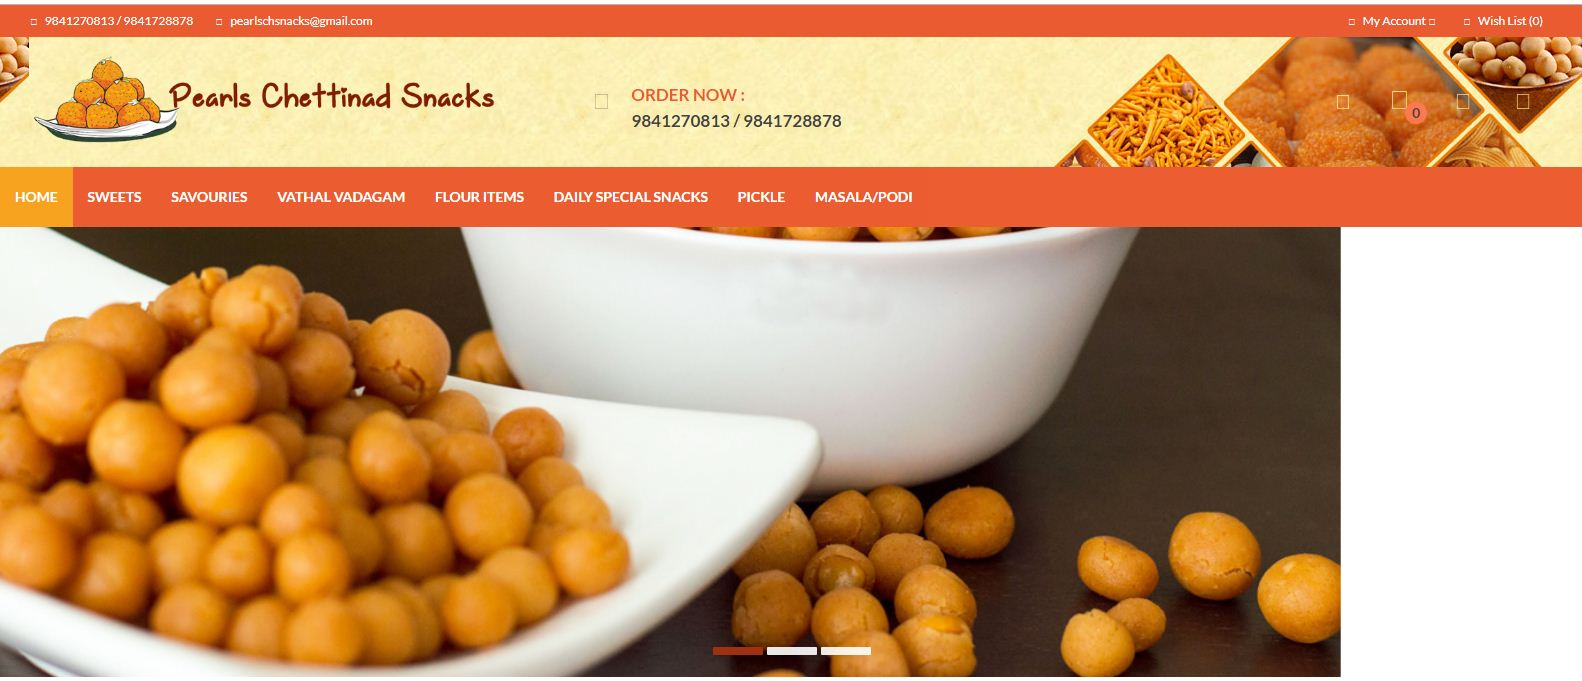 Pearls Chettinad Snacks